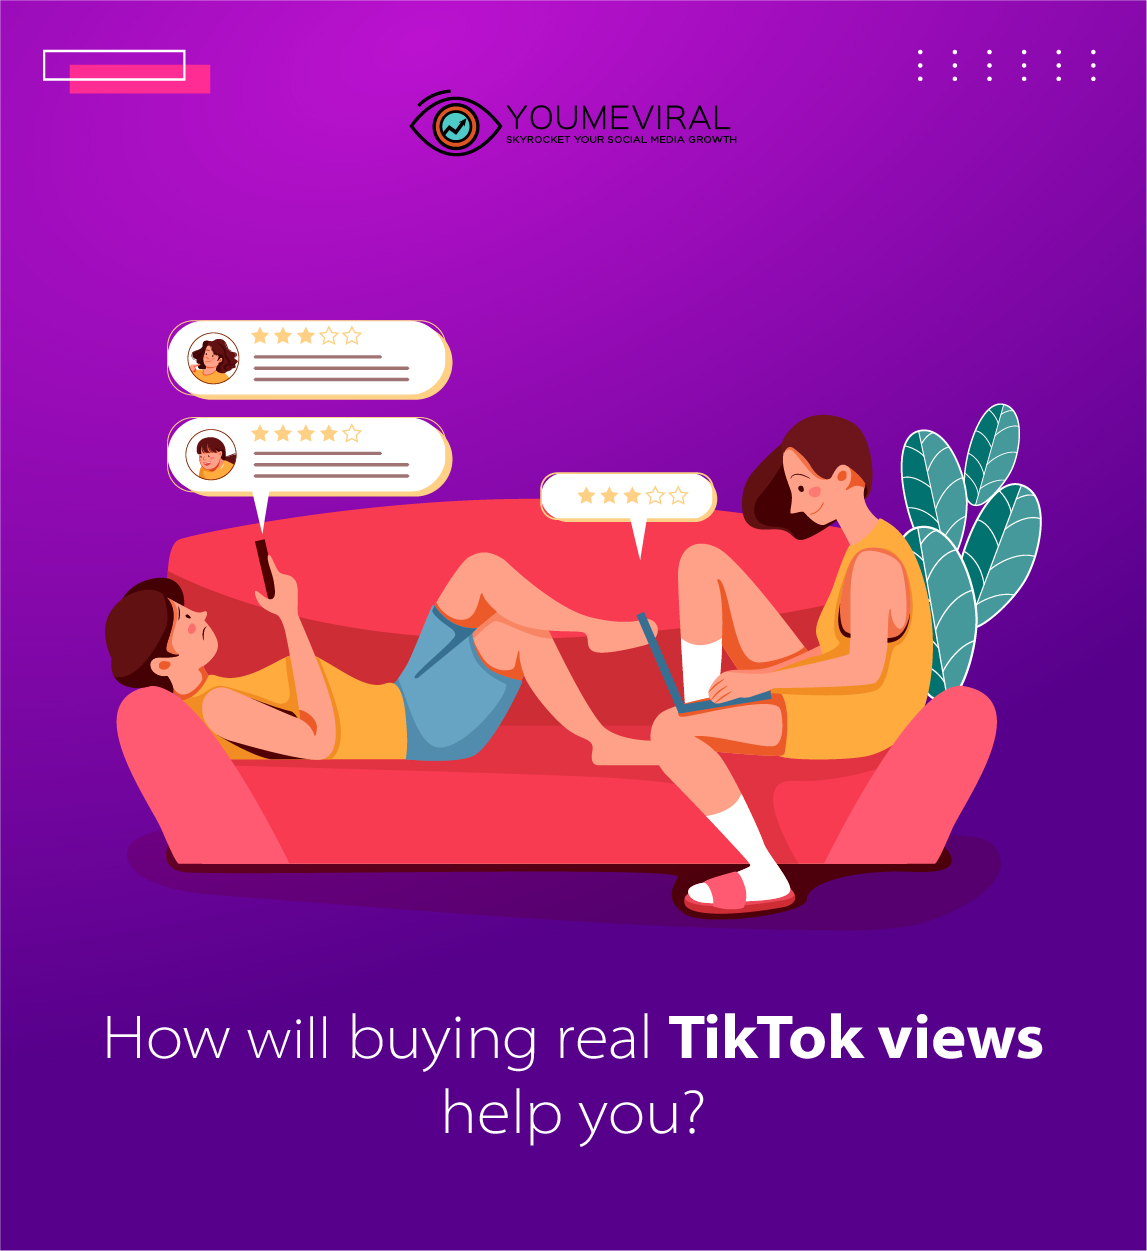 How will buying real TikTok views help you?